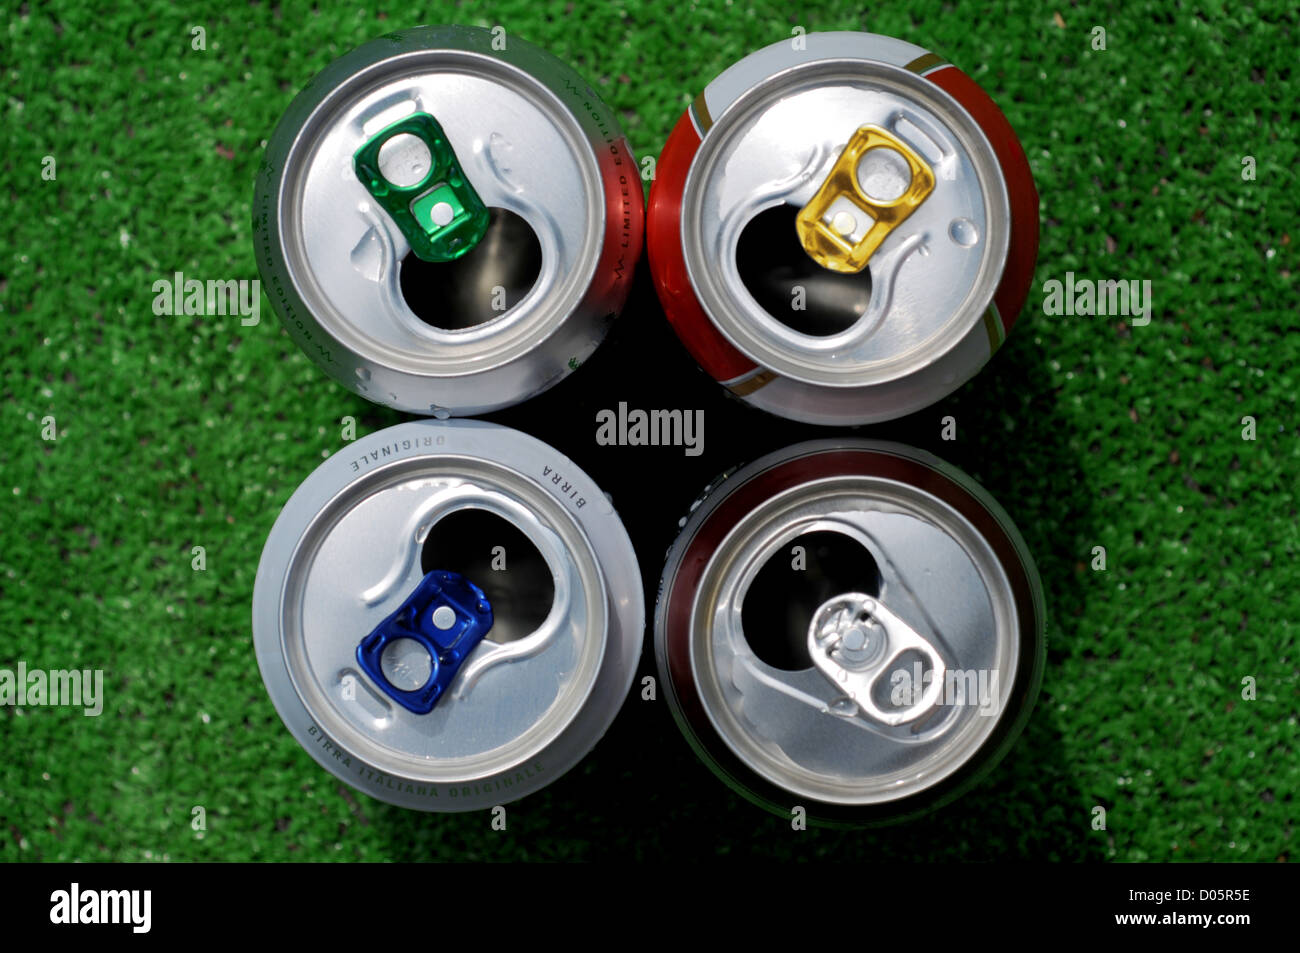 four cans of beer - Stock Image